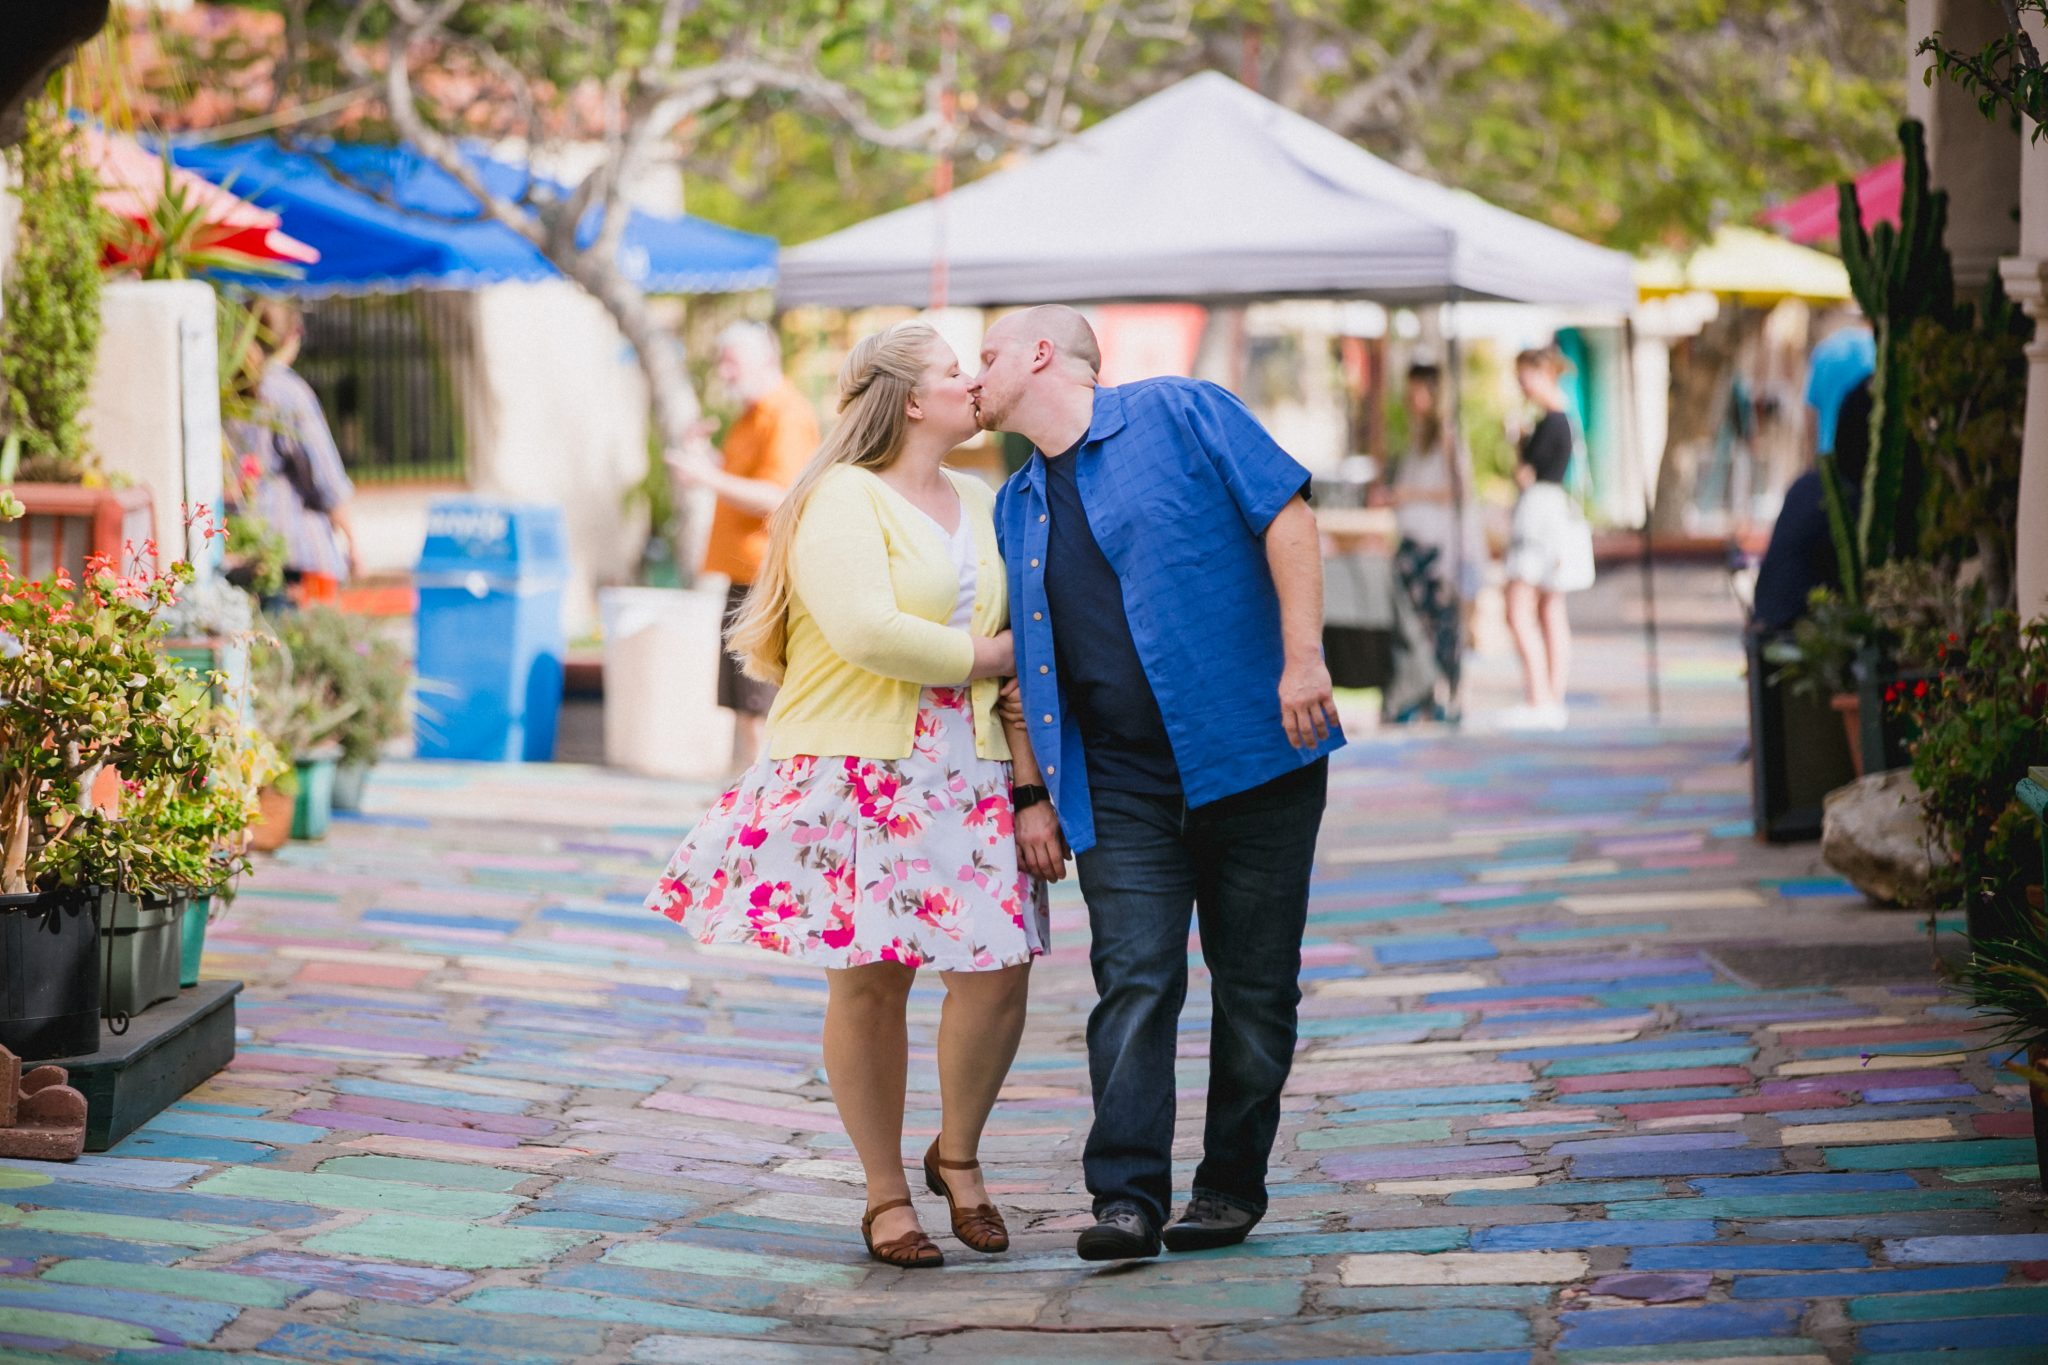 Spring photoshoot outfit ideas at Balboa Park